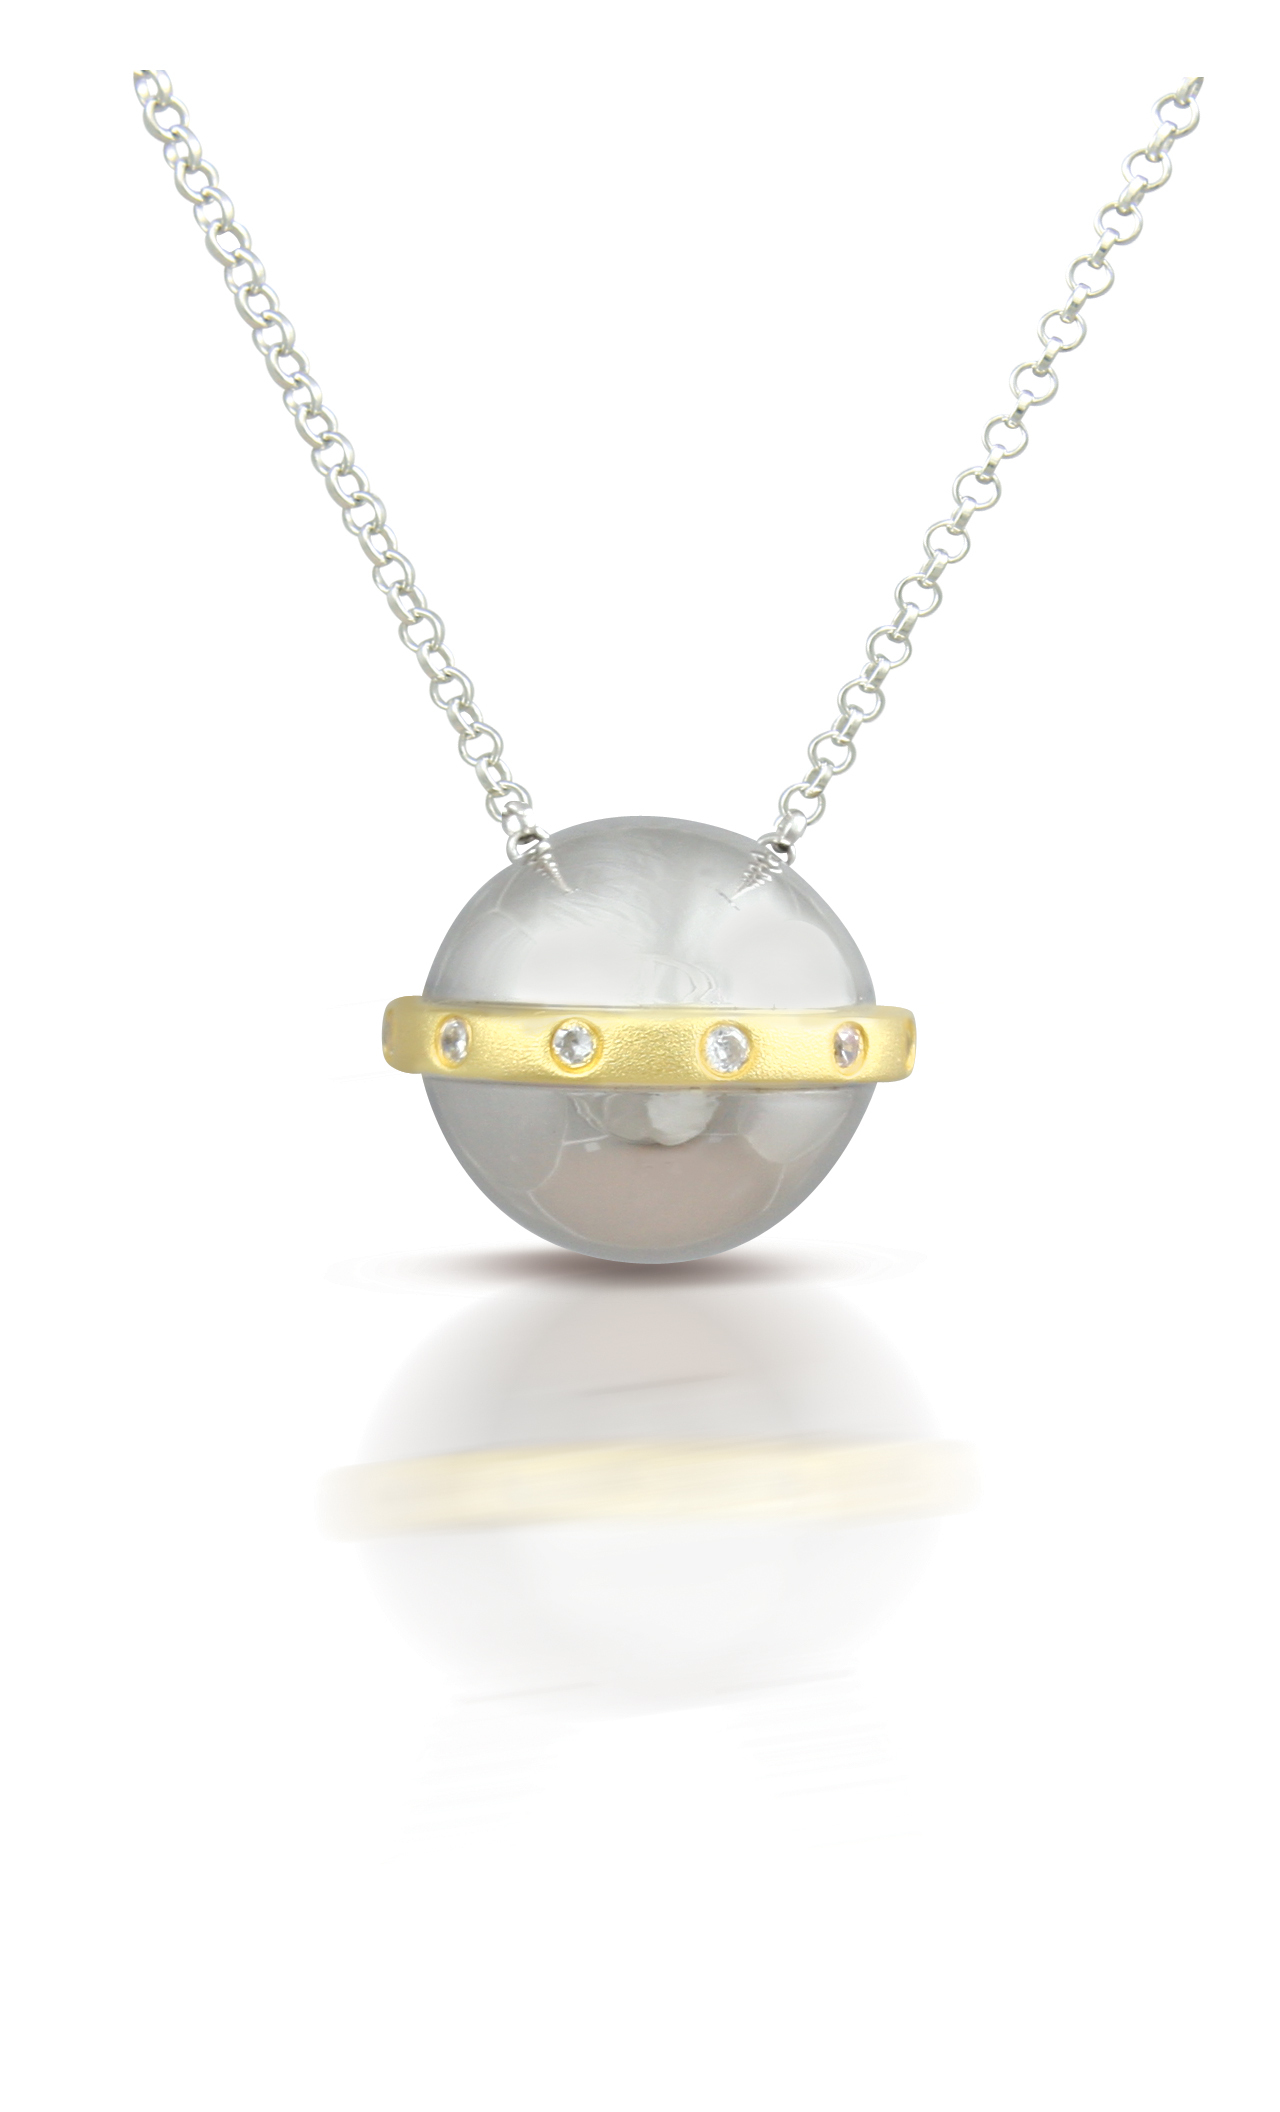 60015 - Sphere of Life 'Halo' Pendant in Sterling Silver